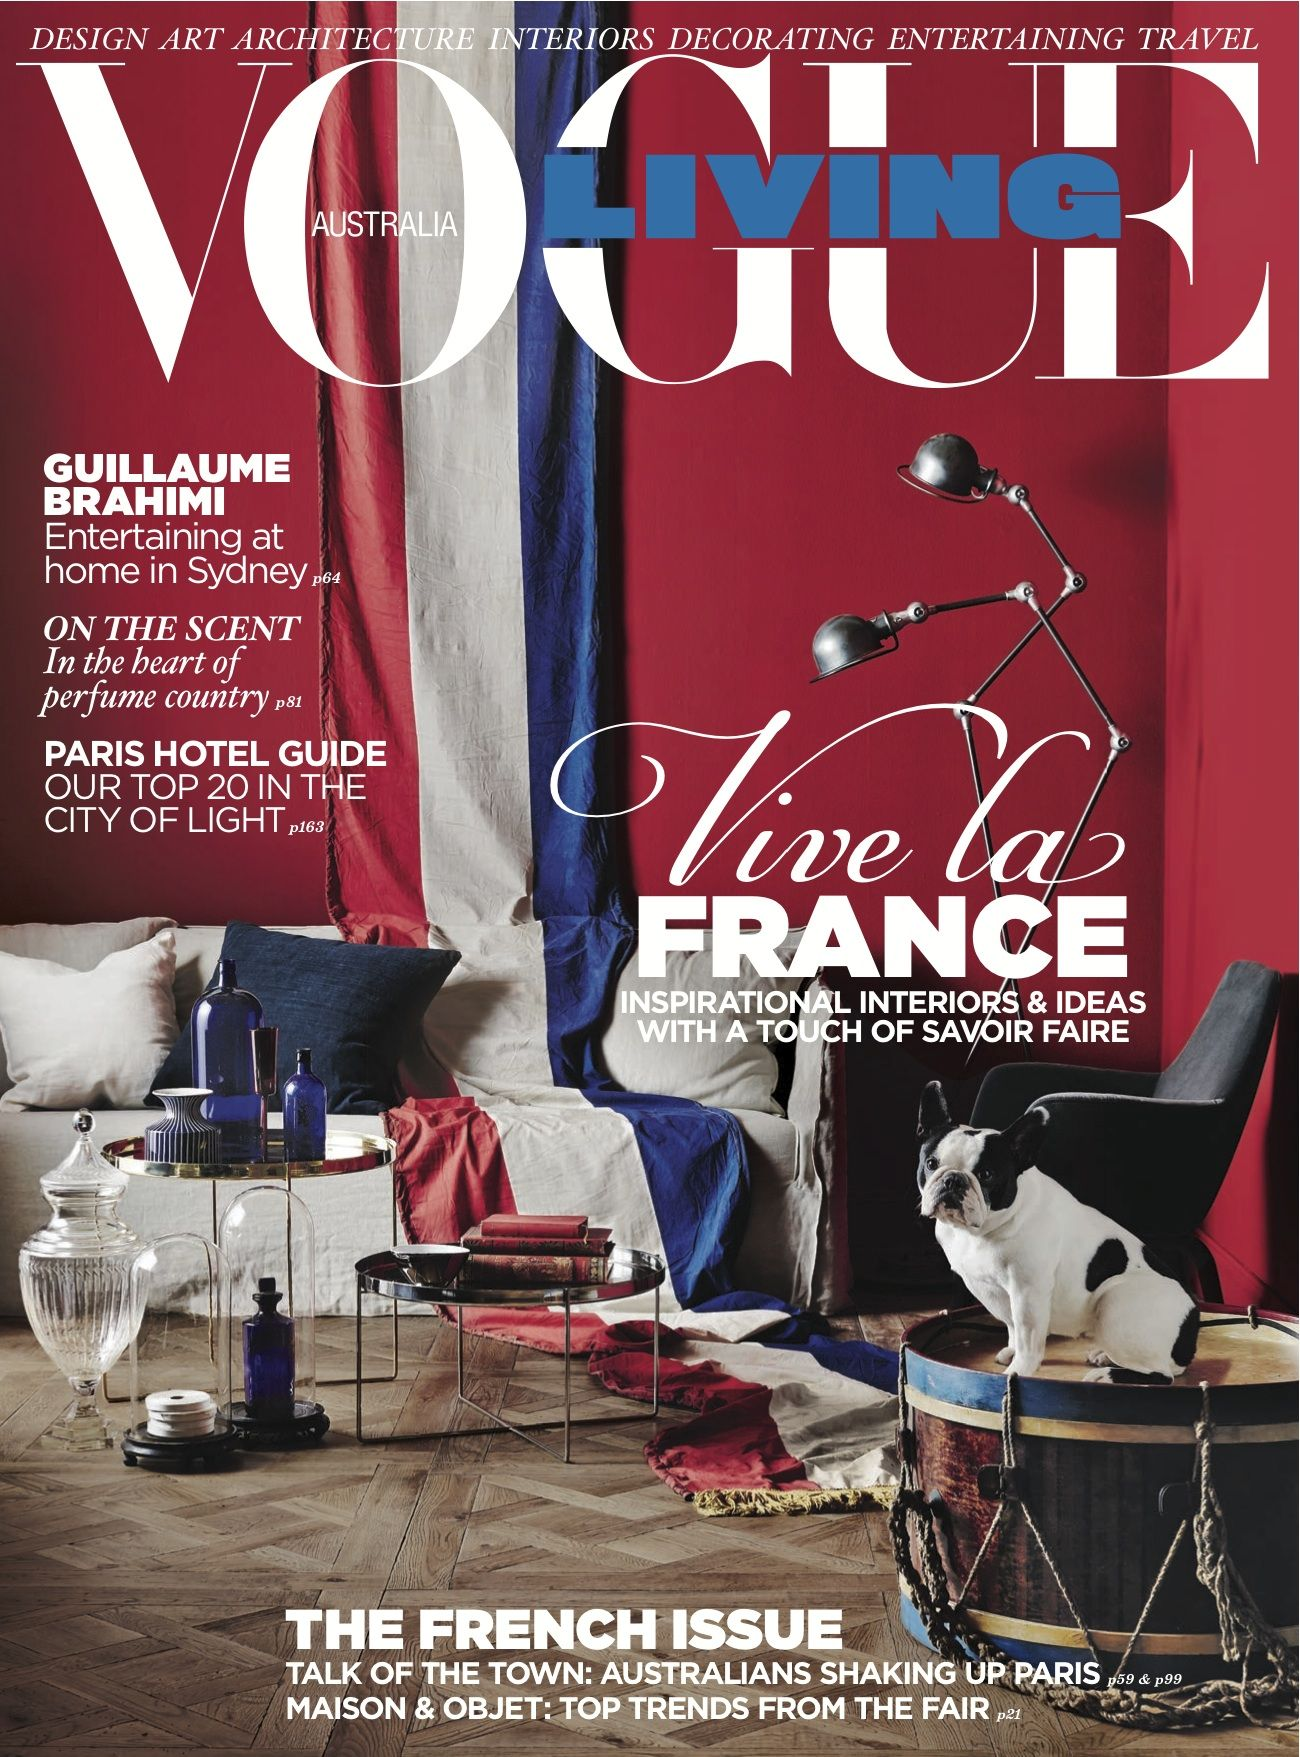 1000 images about vogue living magazine on pinterest hilary - Vogue Decor Magazine